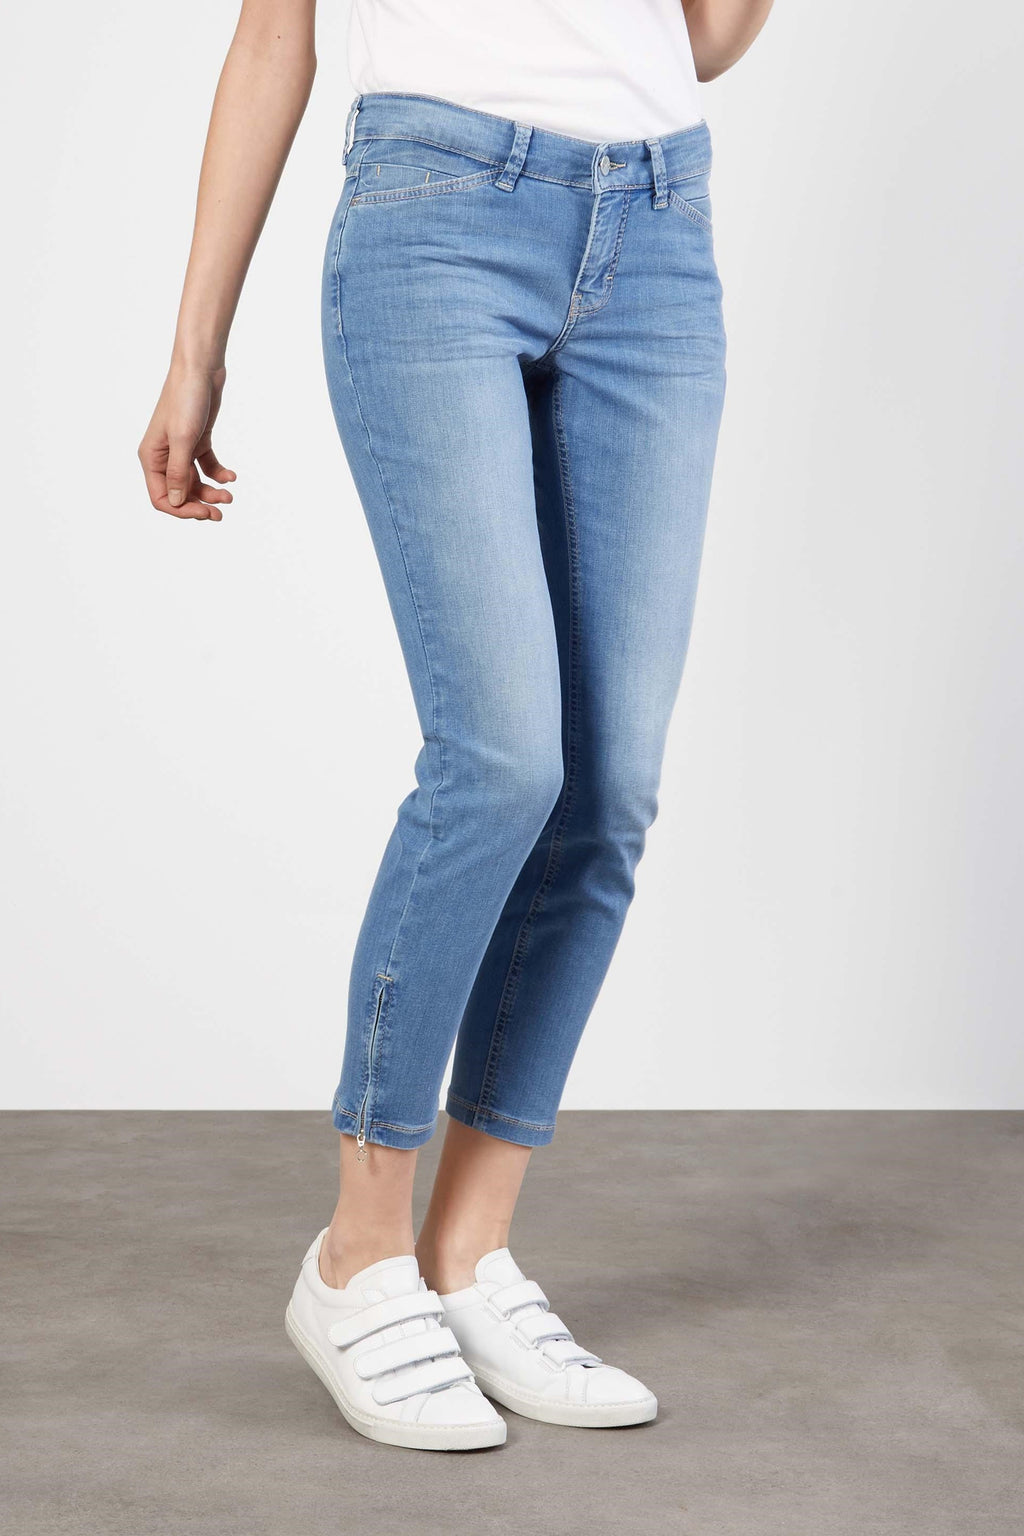 Dream Chic Authentic Jean with Zipper Details